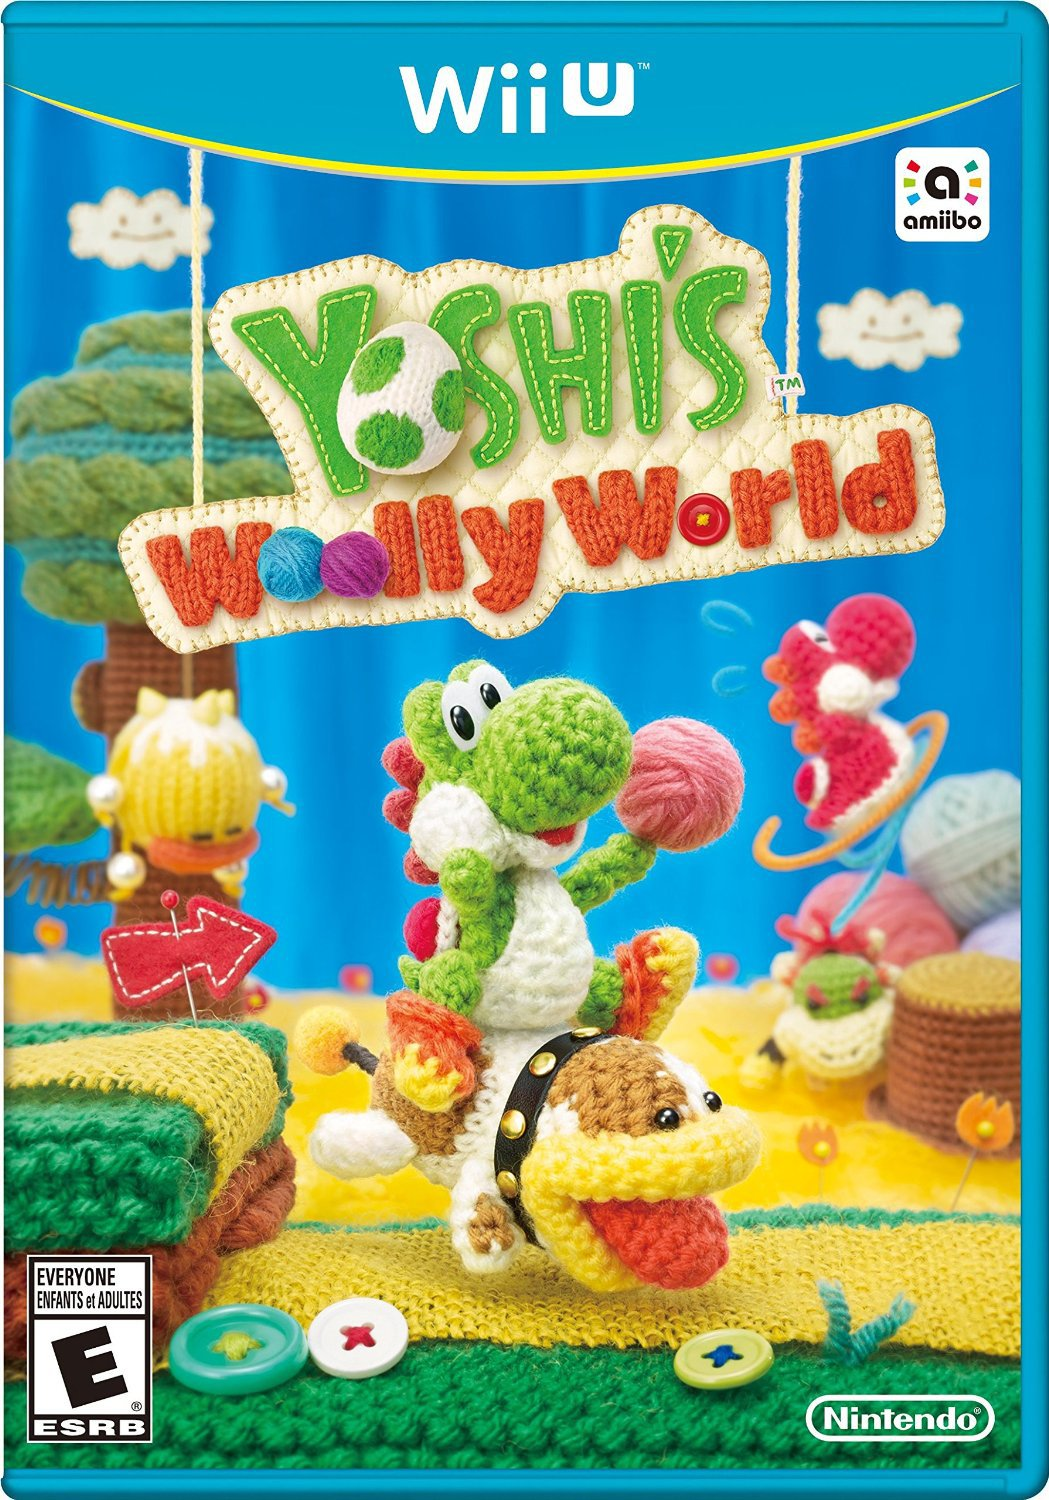 Yoshi's Woolly World Wii U Physical Game Disc US